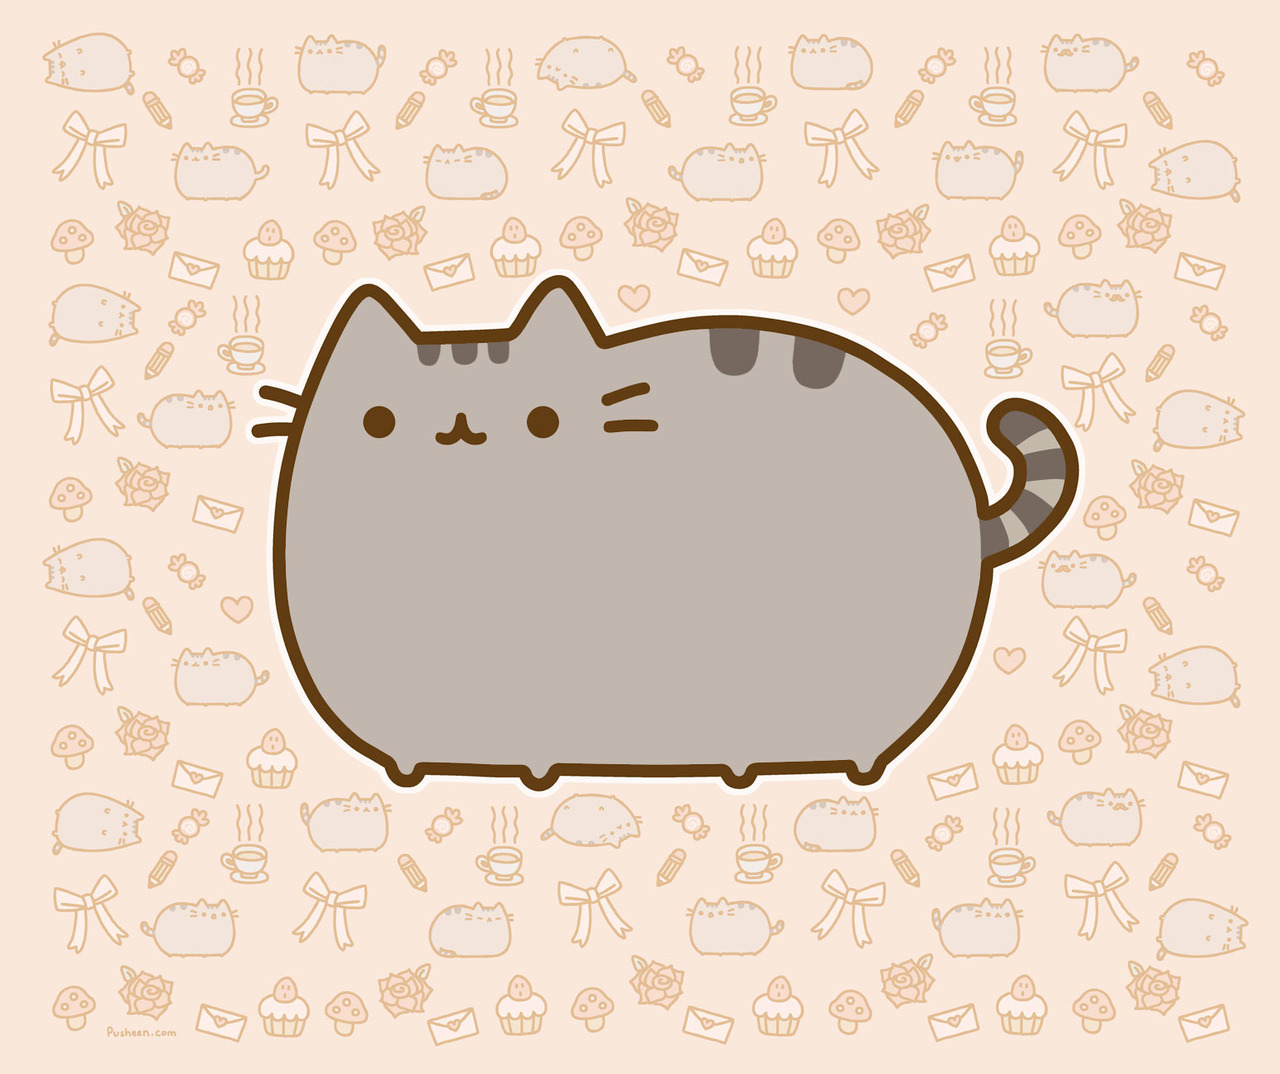 Pusheen the Cat Tells All Like most members of the feline family, Pusheen the Cat enjoys sitting on warm computers, long petting sessions, and many other quintessential feline activities. But she's not your typical tabby. Adopted from a shelter in her youth (hence the name, based upon the Irish word for kitten, puisín), Pusheen has since grown into one of Tumblr's furry sensations.  Her human-like snacking abilities, love of dress-up, and abnormally adorable on-screen bop have garnered hundreds of thousands of fans. She already has a line of merchandise and is working on her first book. And yet, despite all this fame, Pusheen remains her modest, friendly, yarn-loving self. How does she stay so grounded, amidst all the adulation? Pusheen answers, in typical fashion. Where do you live?  I live in the USA. To be specific though, I spend most of my time on this couch. Where's the coolest place your travels have taken you?  I think that would have to be the refrigerator. It's honestly one of my favorite places in the world. You're kind of a big deal. People can even buy shorts and earrings and whatnot with you on them. With all this attention, how do you stay humble?  I always start my day off with a delicious slice of humble pie. Mmmmm. Anyone special in your life these days?  Are you asking me out? You don't eat cat food. Let's take tonight, for example. Any dinner plans?  If you want to go get a pizza, I won't say no! How has Tumblr changed your life?  Before, I was just a chubby tabby cat. Now, I'm a chubby tabby cat with a blog! — Sky Dylan-Robbins